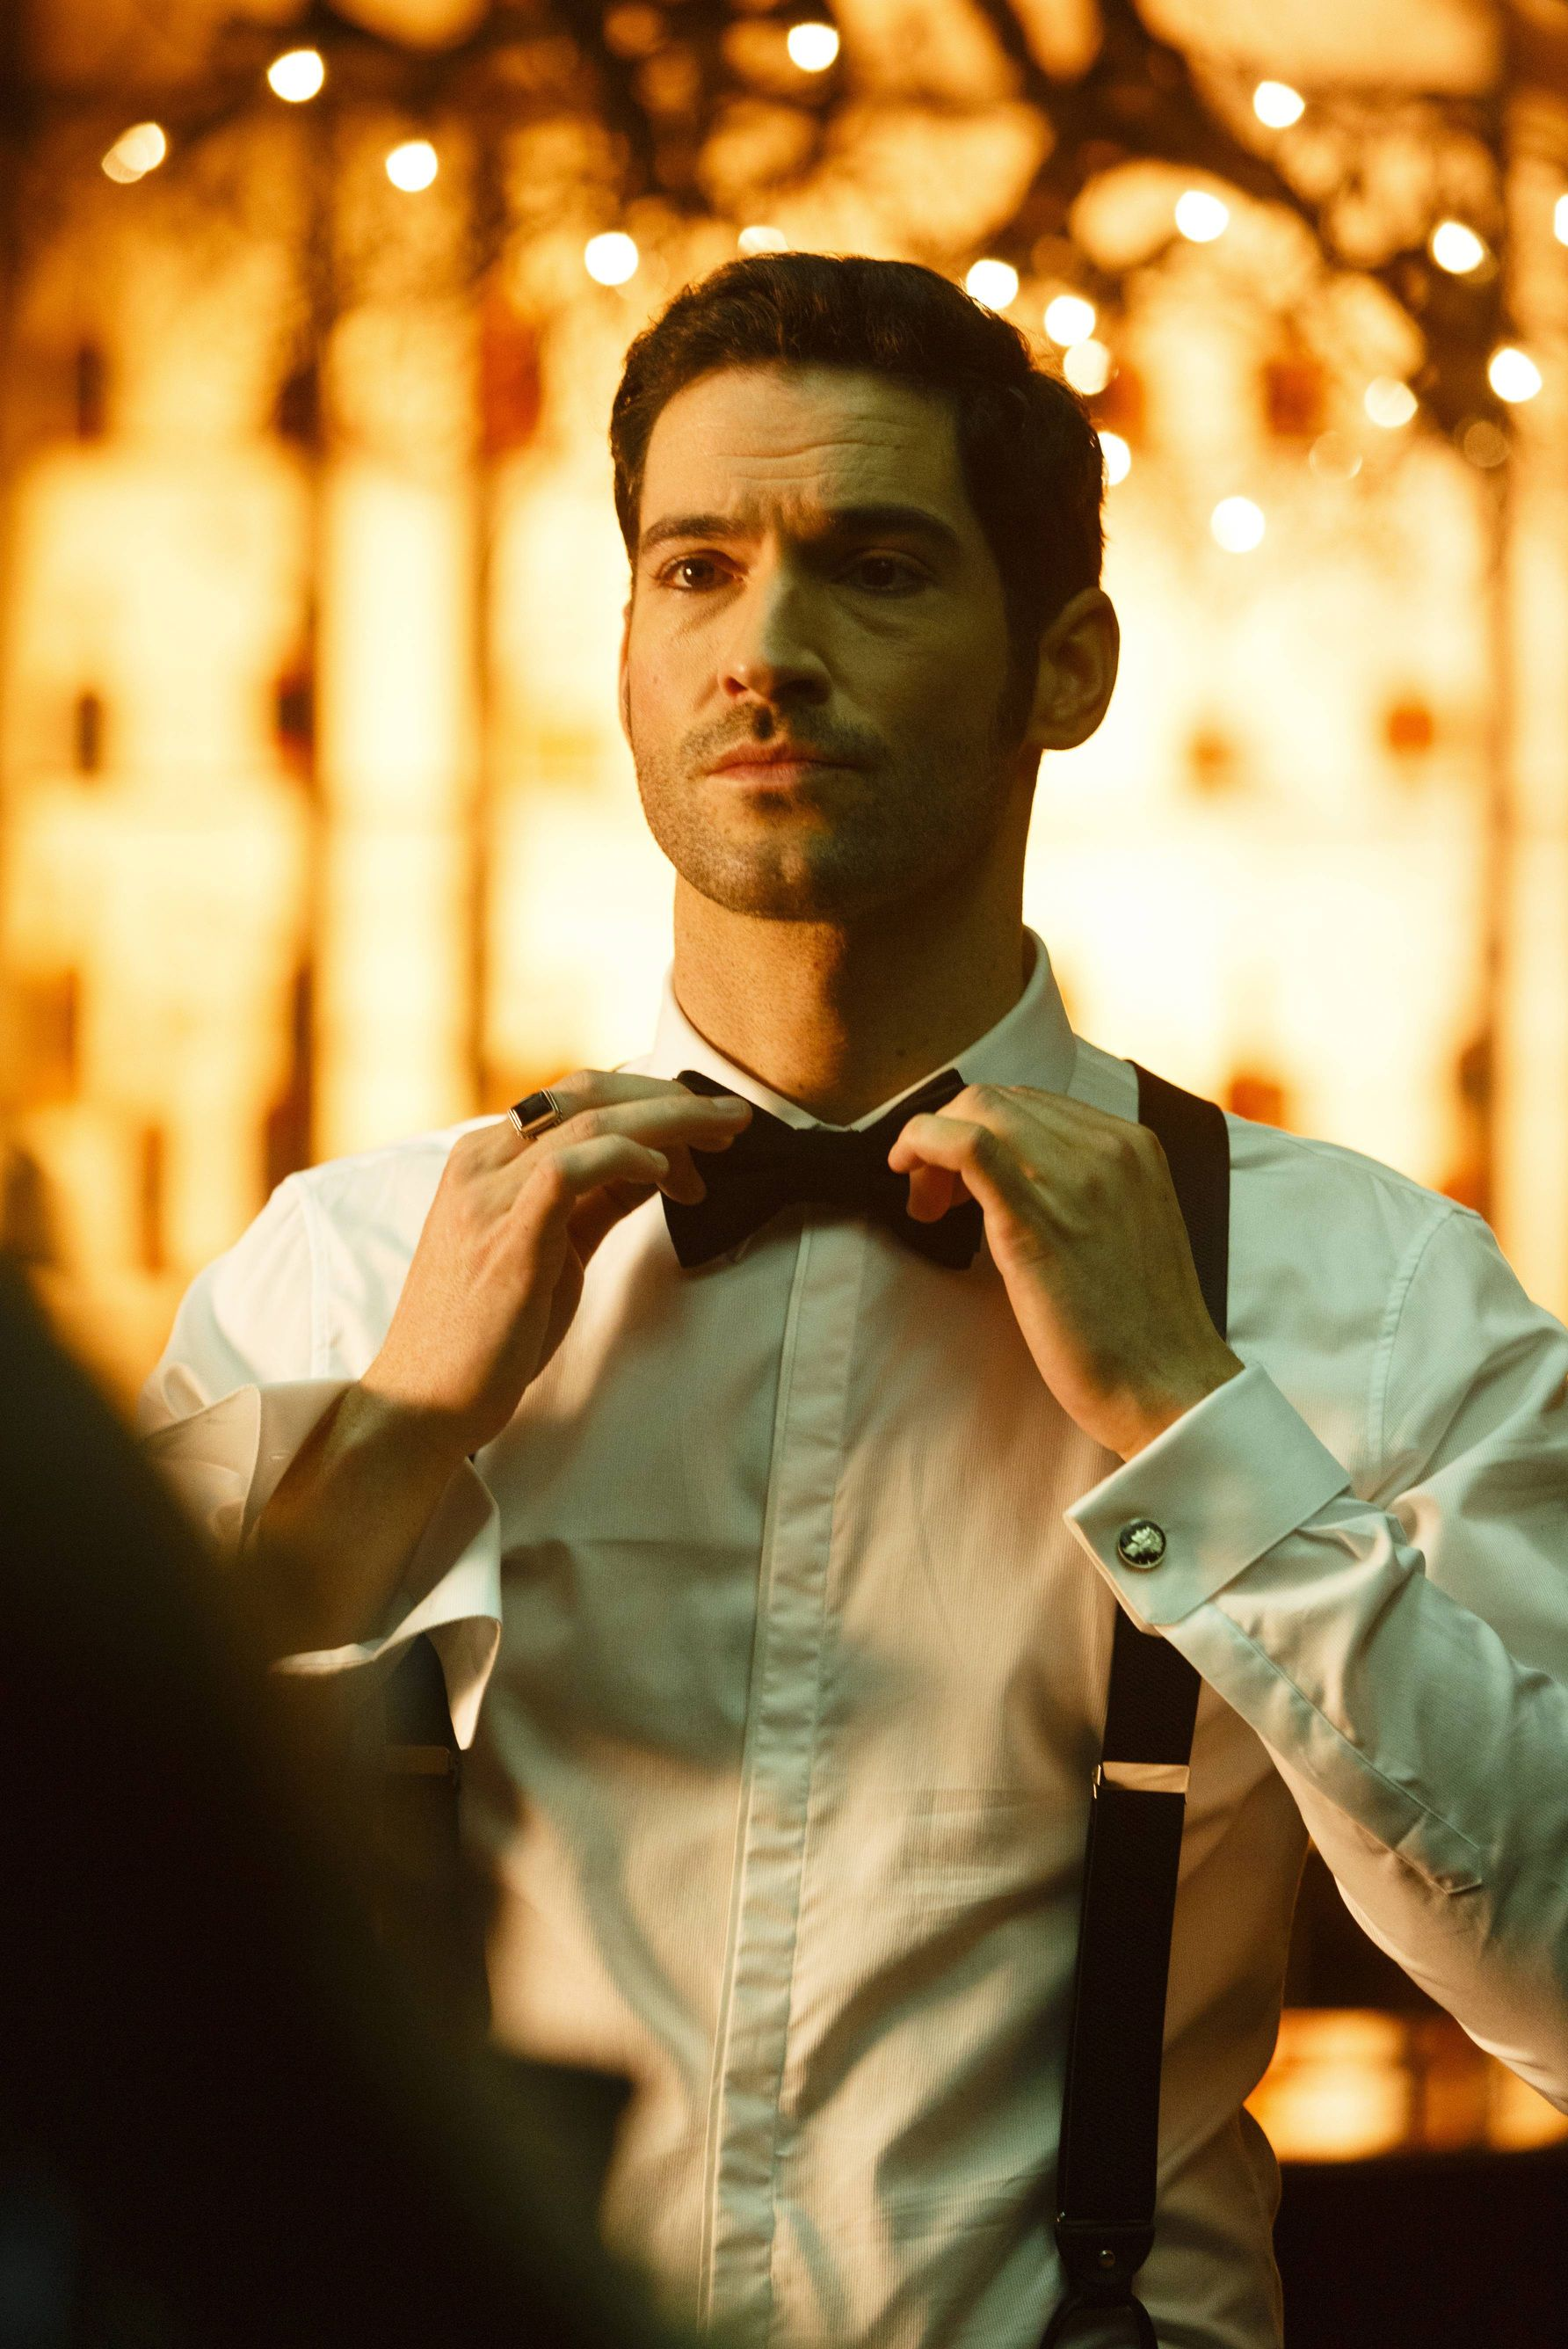 Pin by Grace Barbo on Lucifer in 2019 | Tom ellis lucifer ...